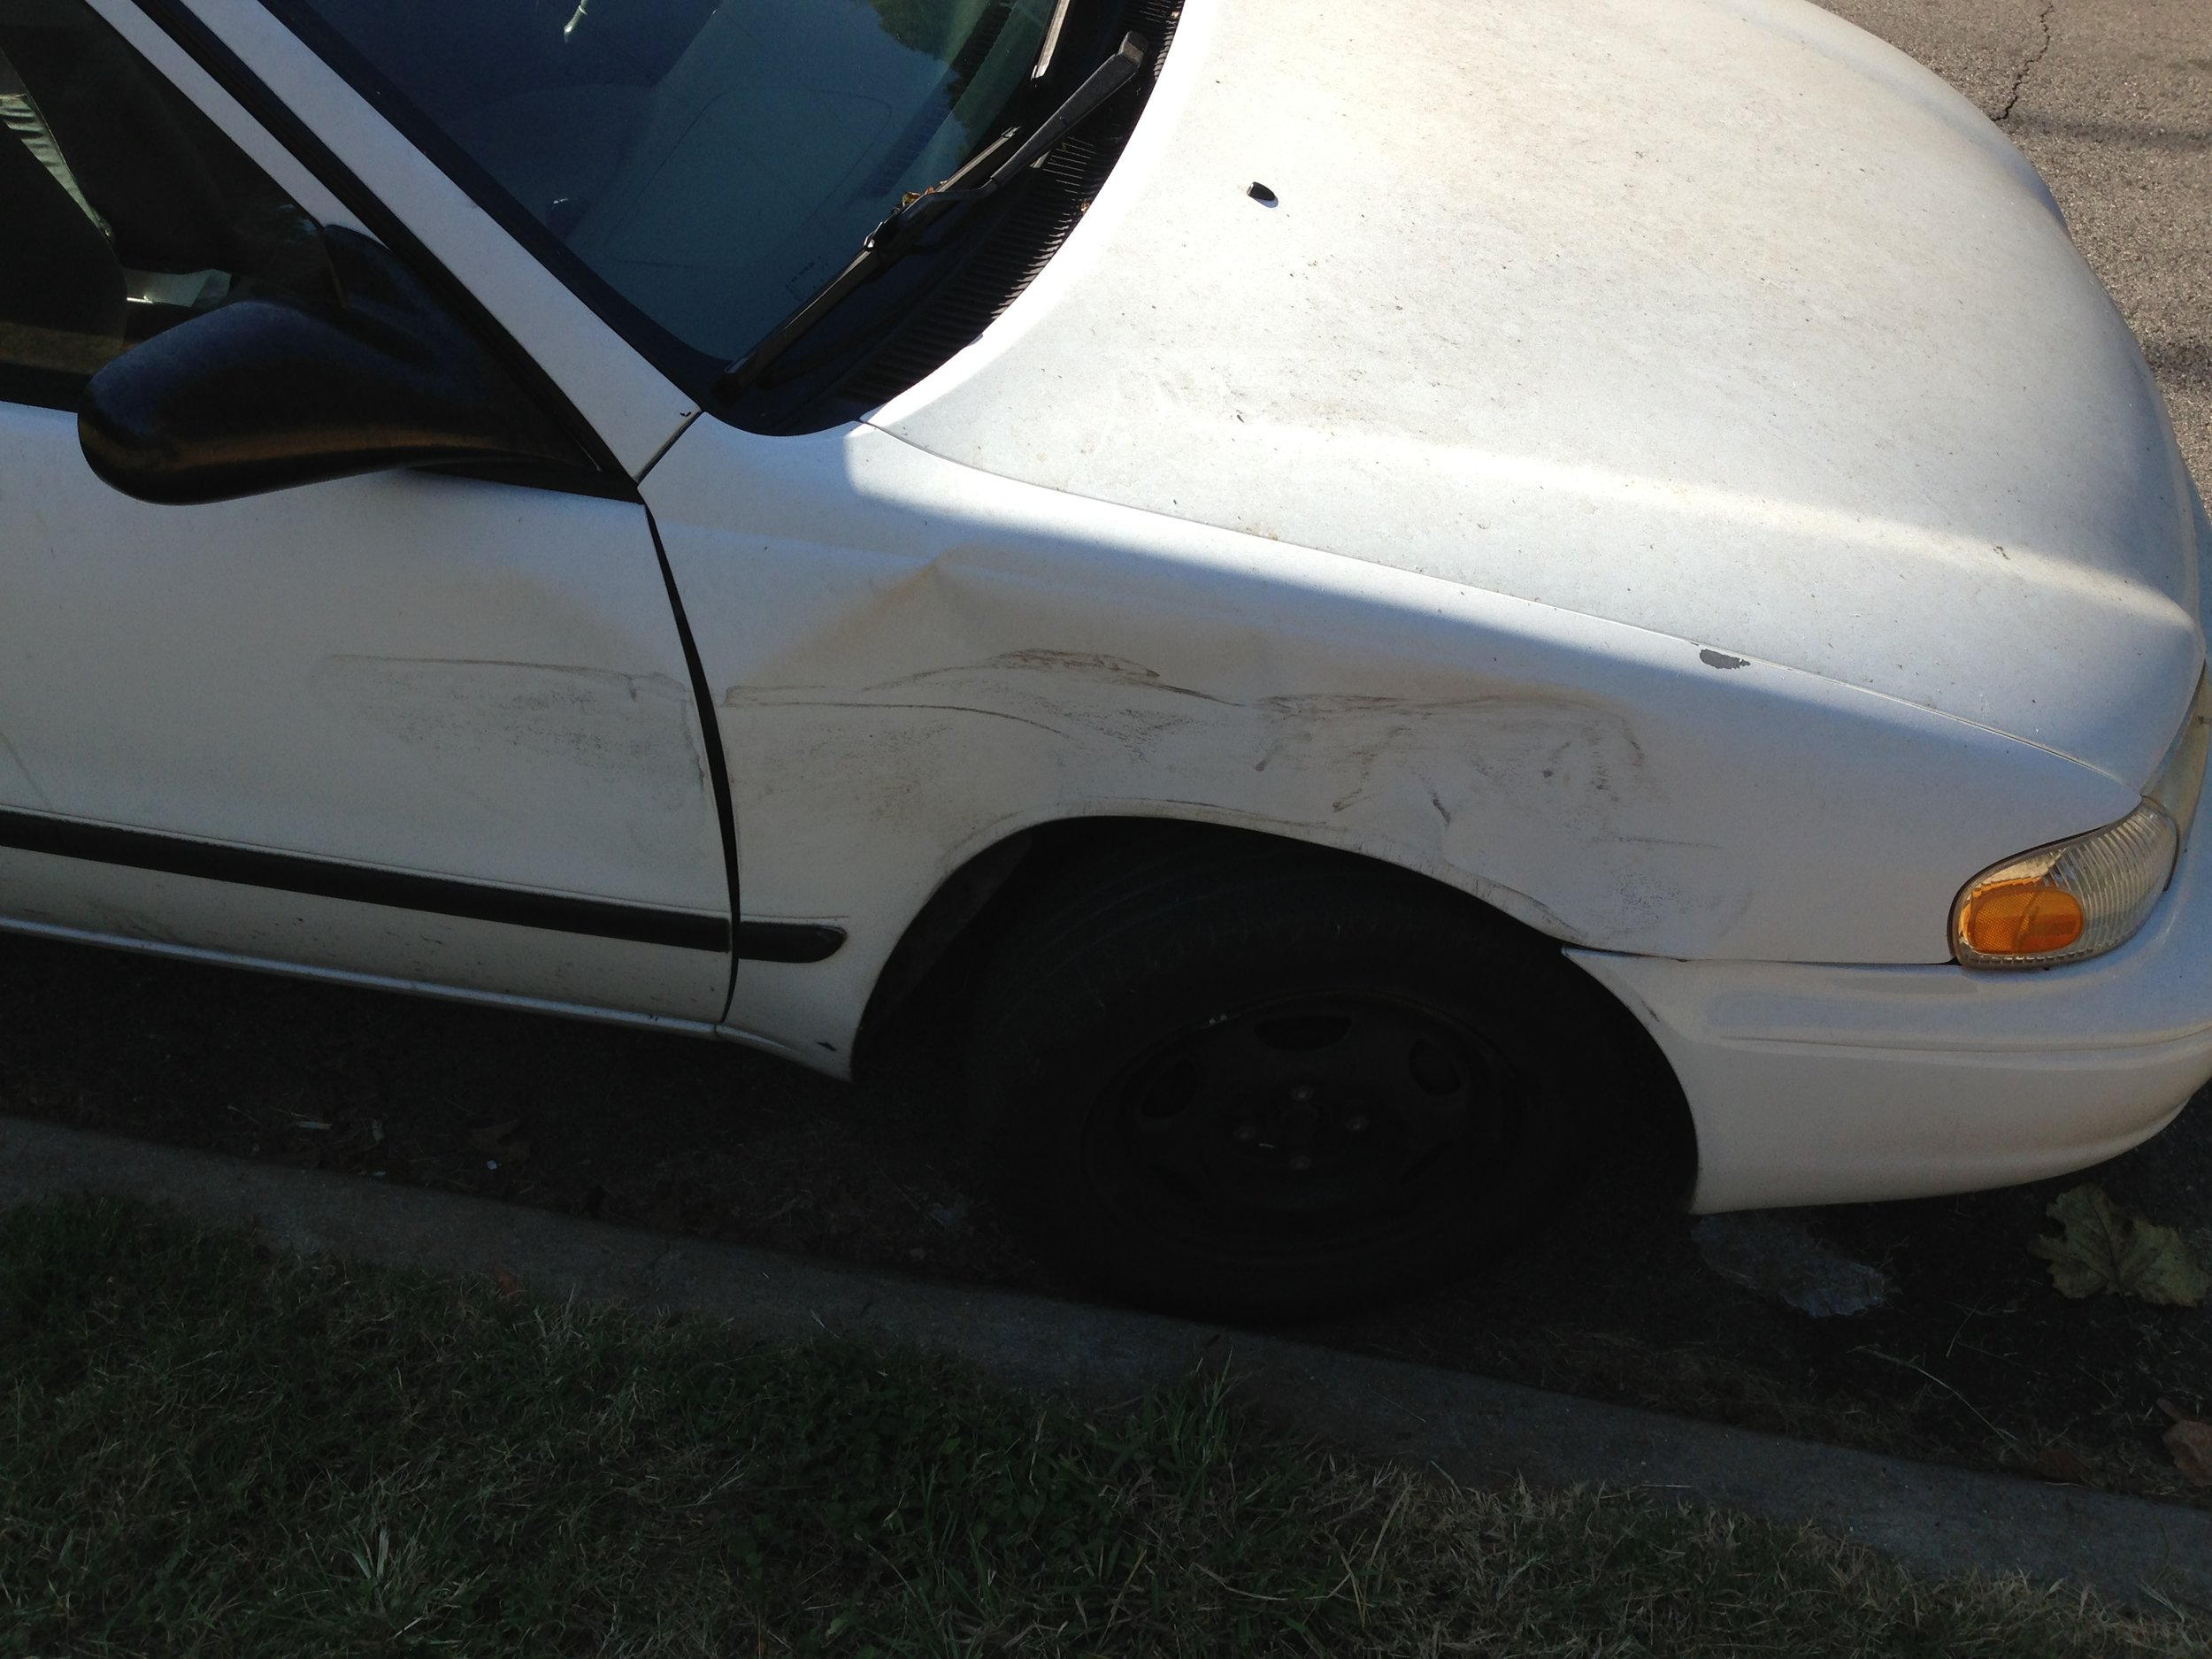 My poor car.